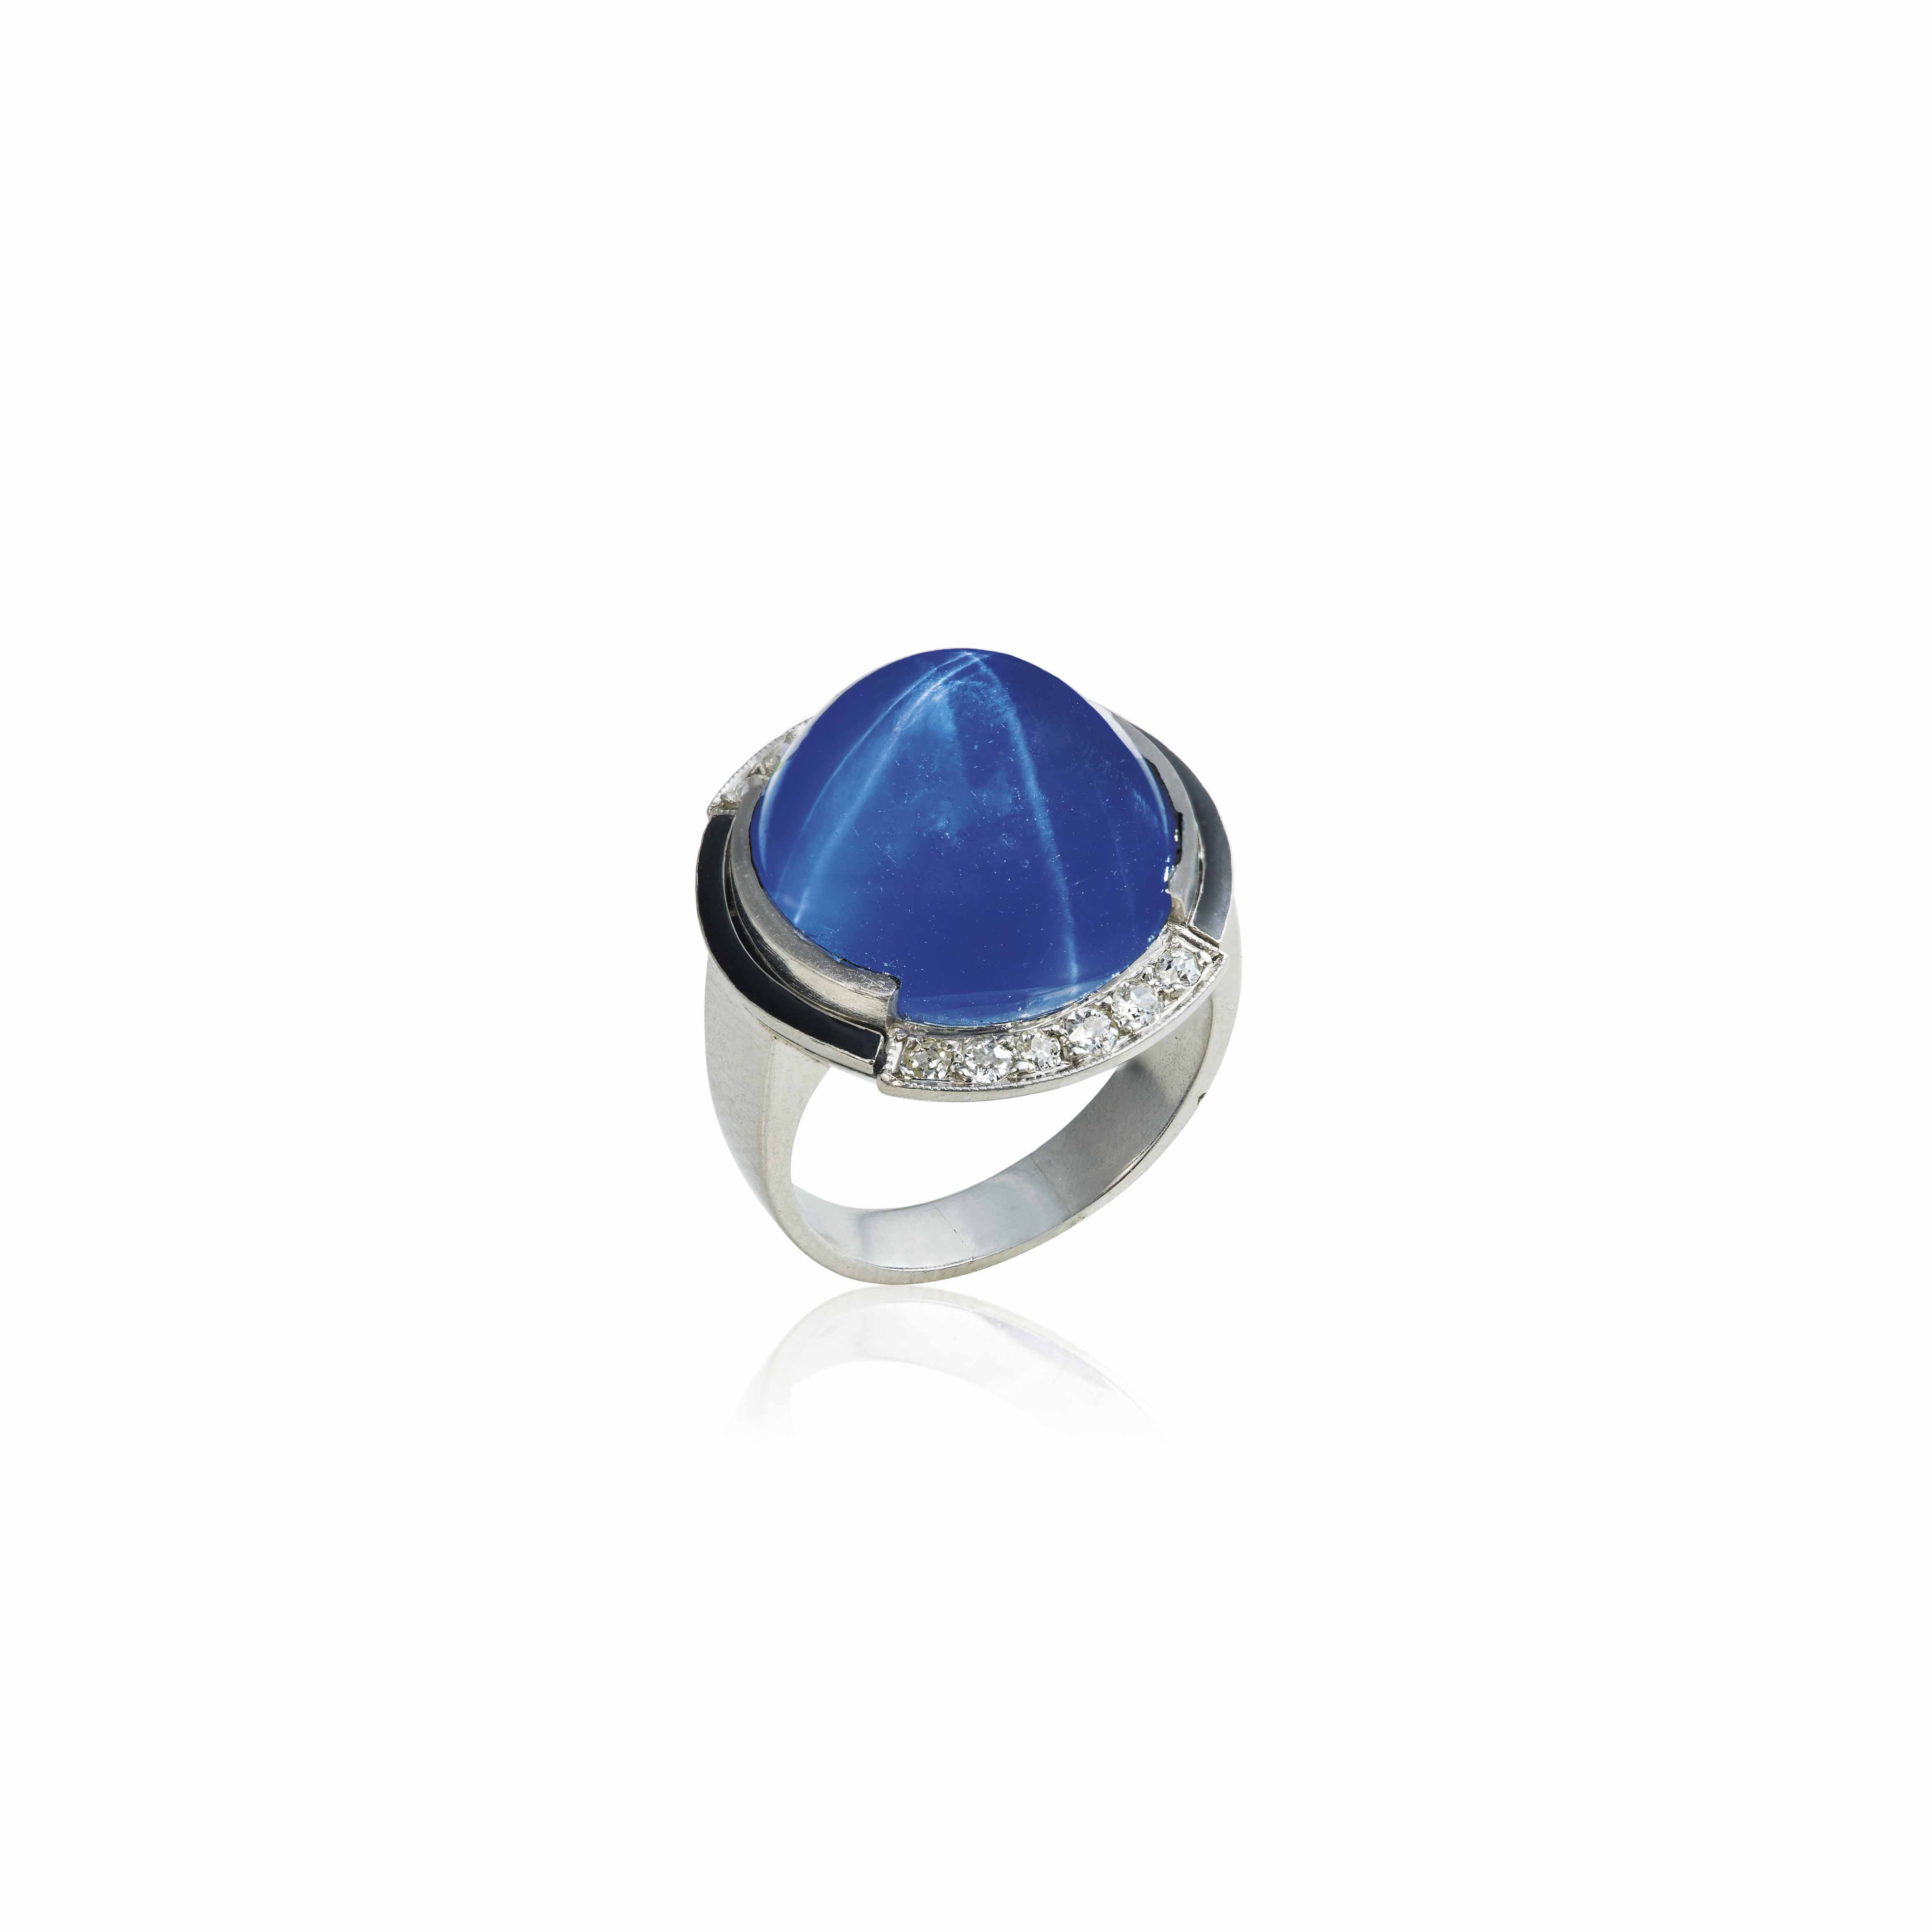 AN ART DÉCO SAPPHIRE, DIAMOND AND ENAMEL RING, BY RAYMOND TEMPLIER